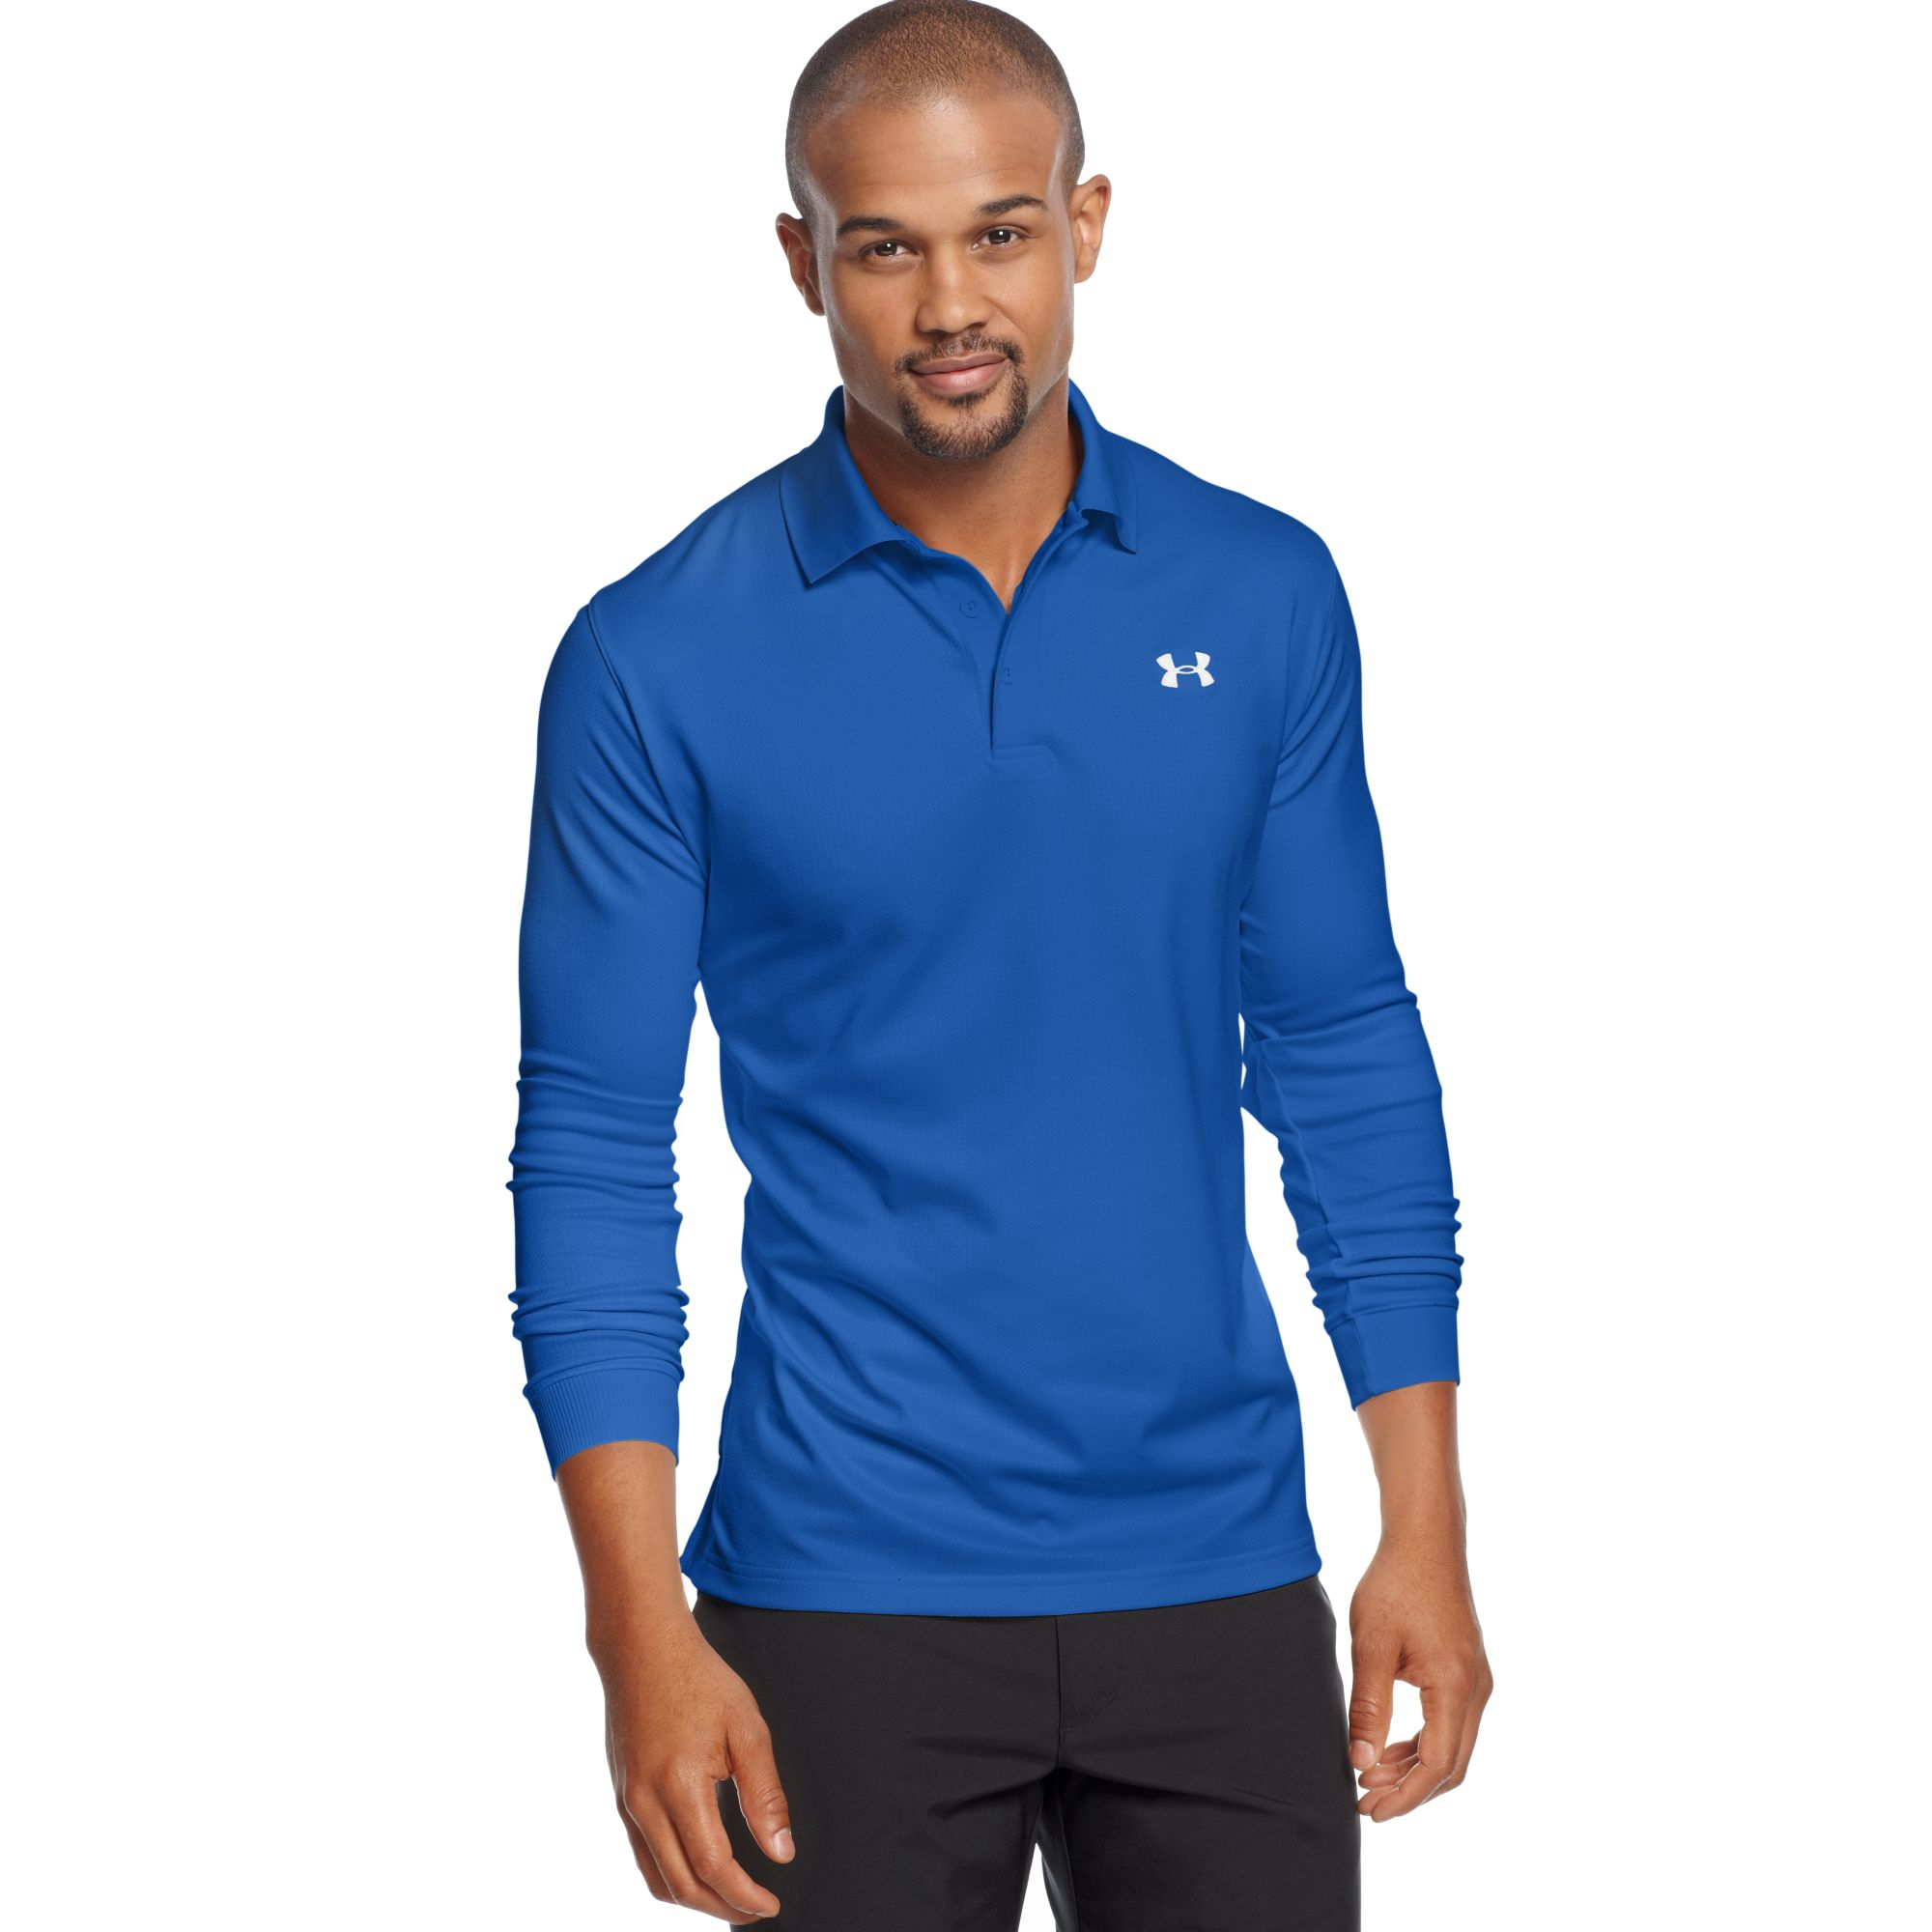 Under Armour Longsleeve Performance Polo Shirt In Blue For